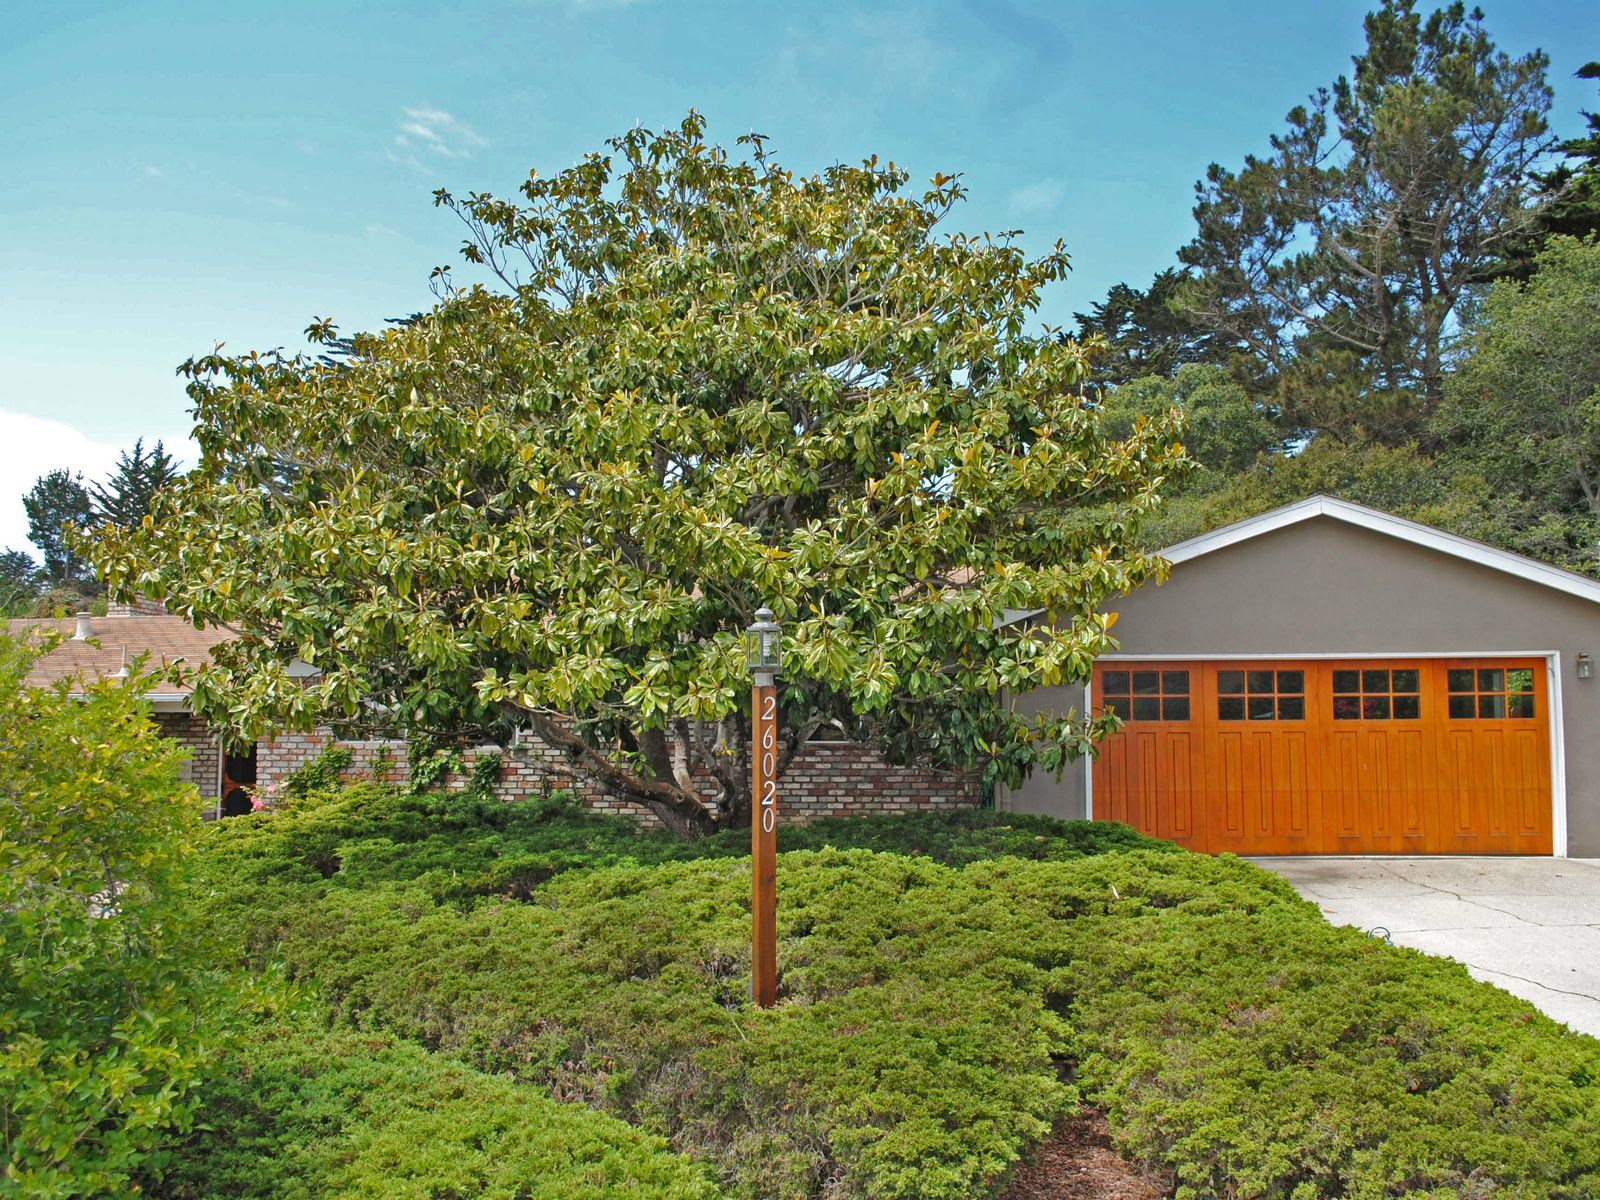 Four Bedroom Carmel Home on Cul-De-Sac, Carmel CA Single Family Home - Monterey Real Estate